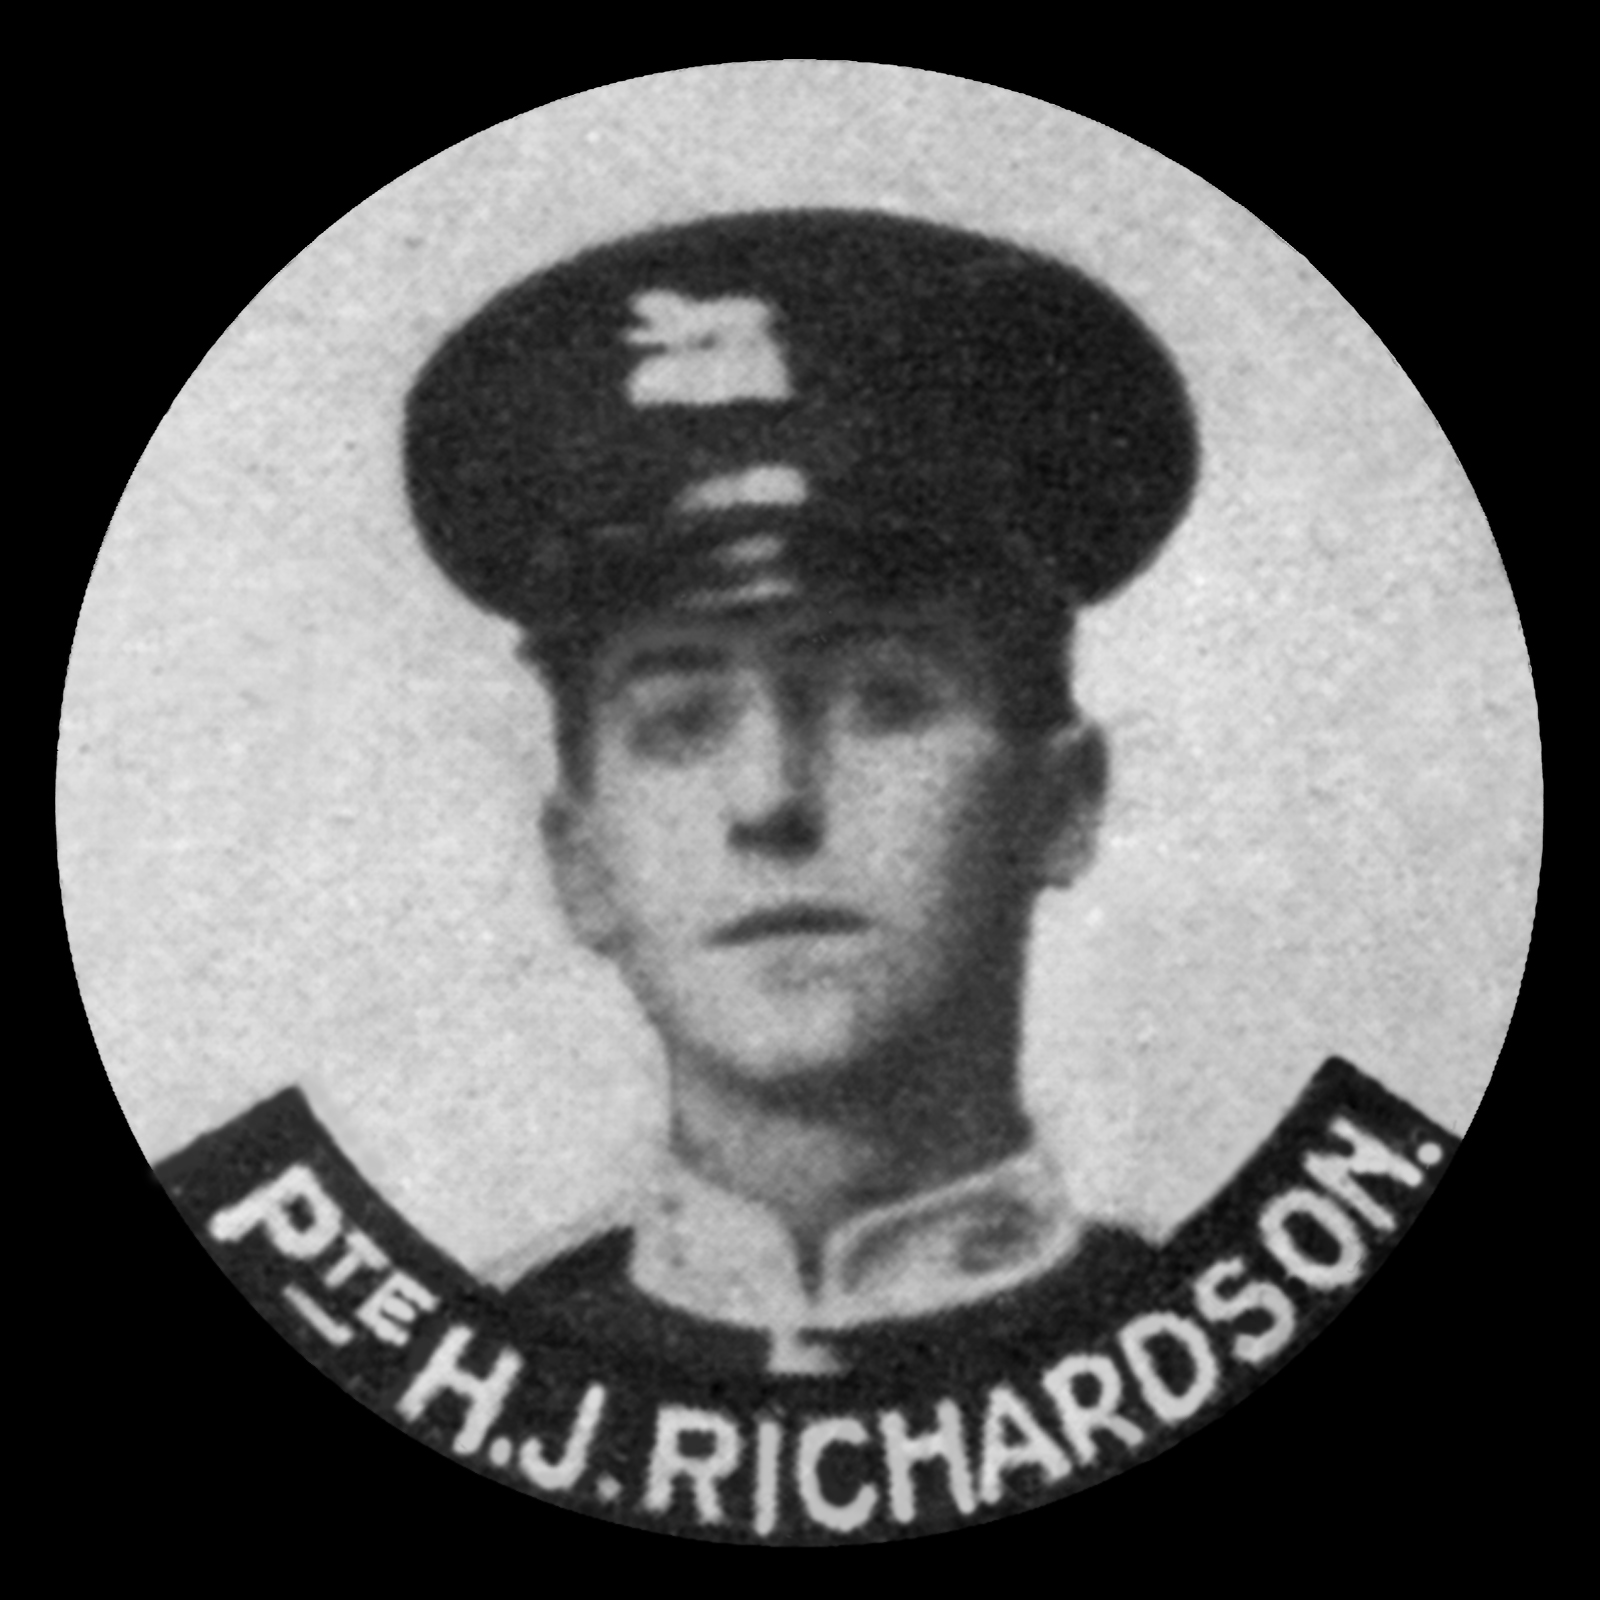 Henry James Private Henry James Richardson Rutland Remembers